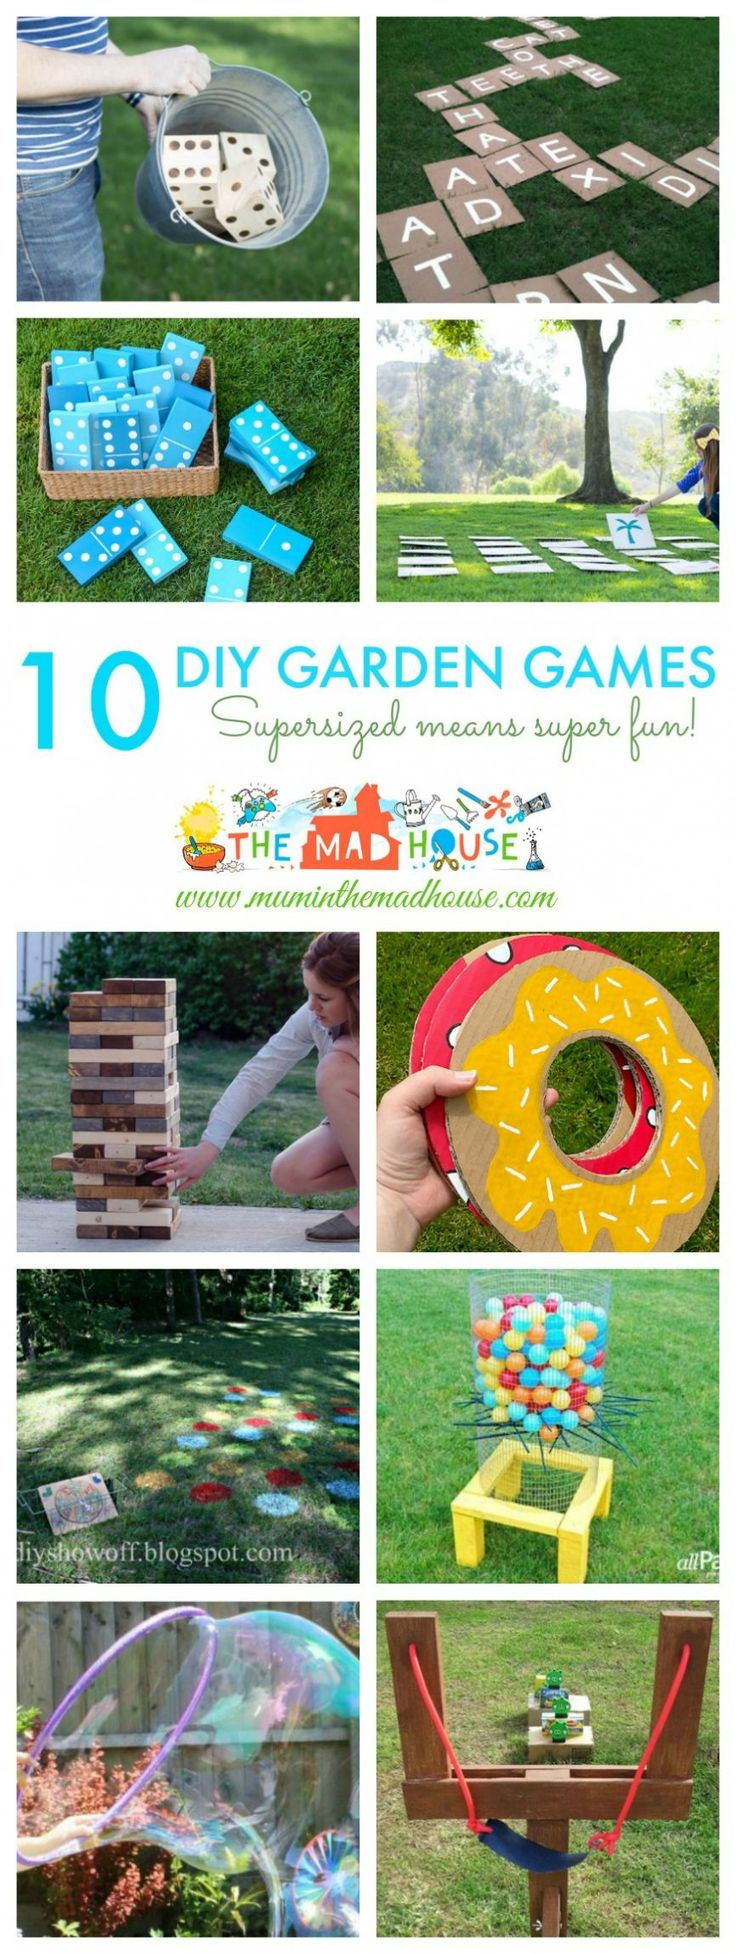 10 DIY Giant Garden Games - supersized means super fun for these amazing backyard and garden games.  They are perfect for a family night or for weddings and parties.  Children and adults alike will have so much fun playing these garden games.